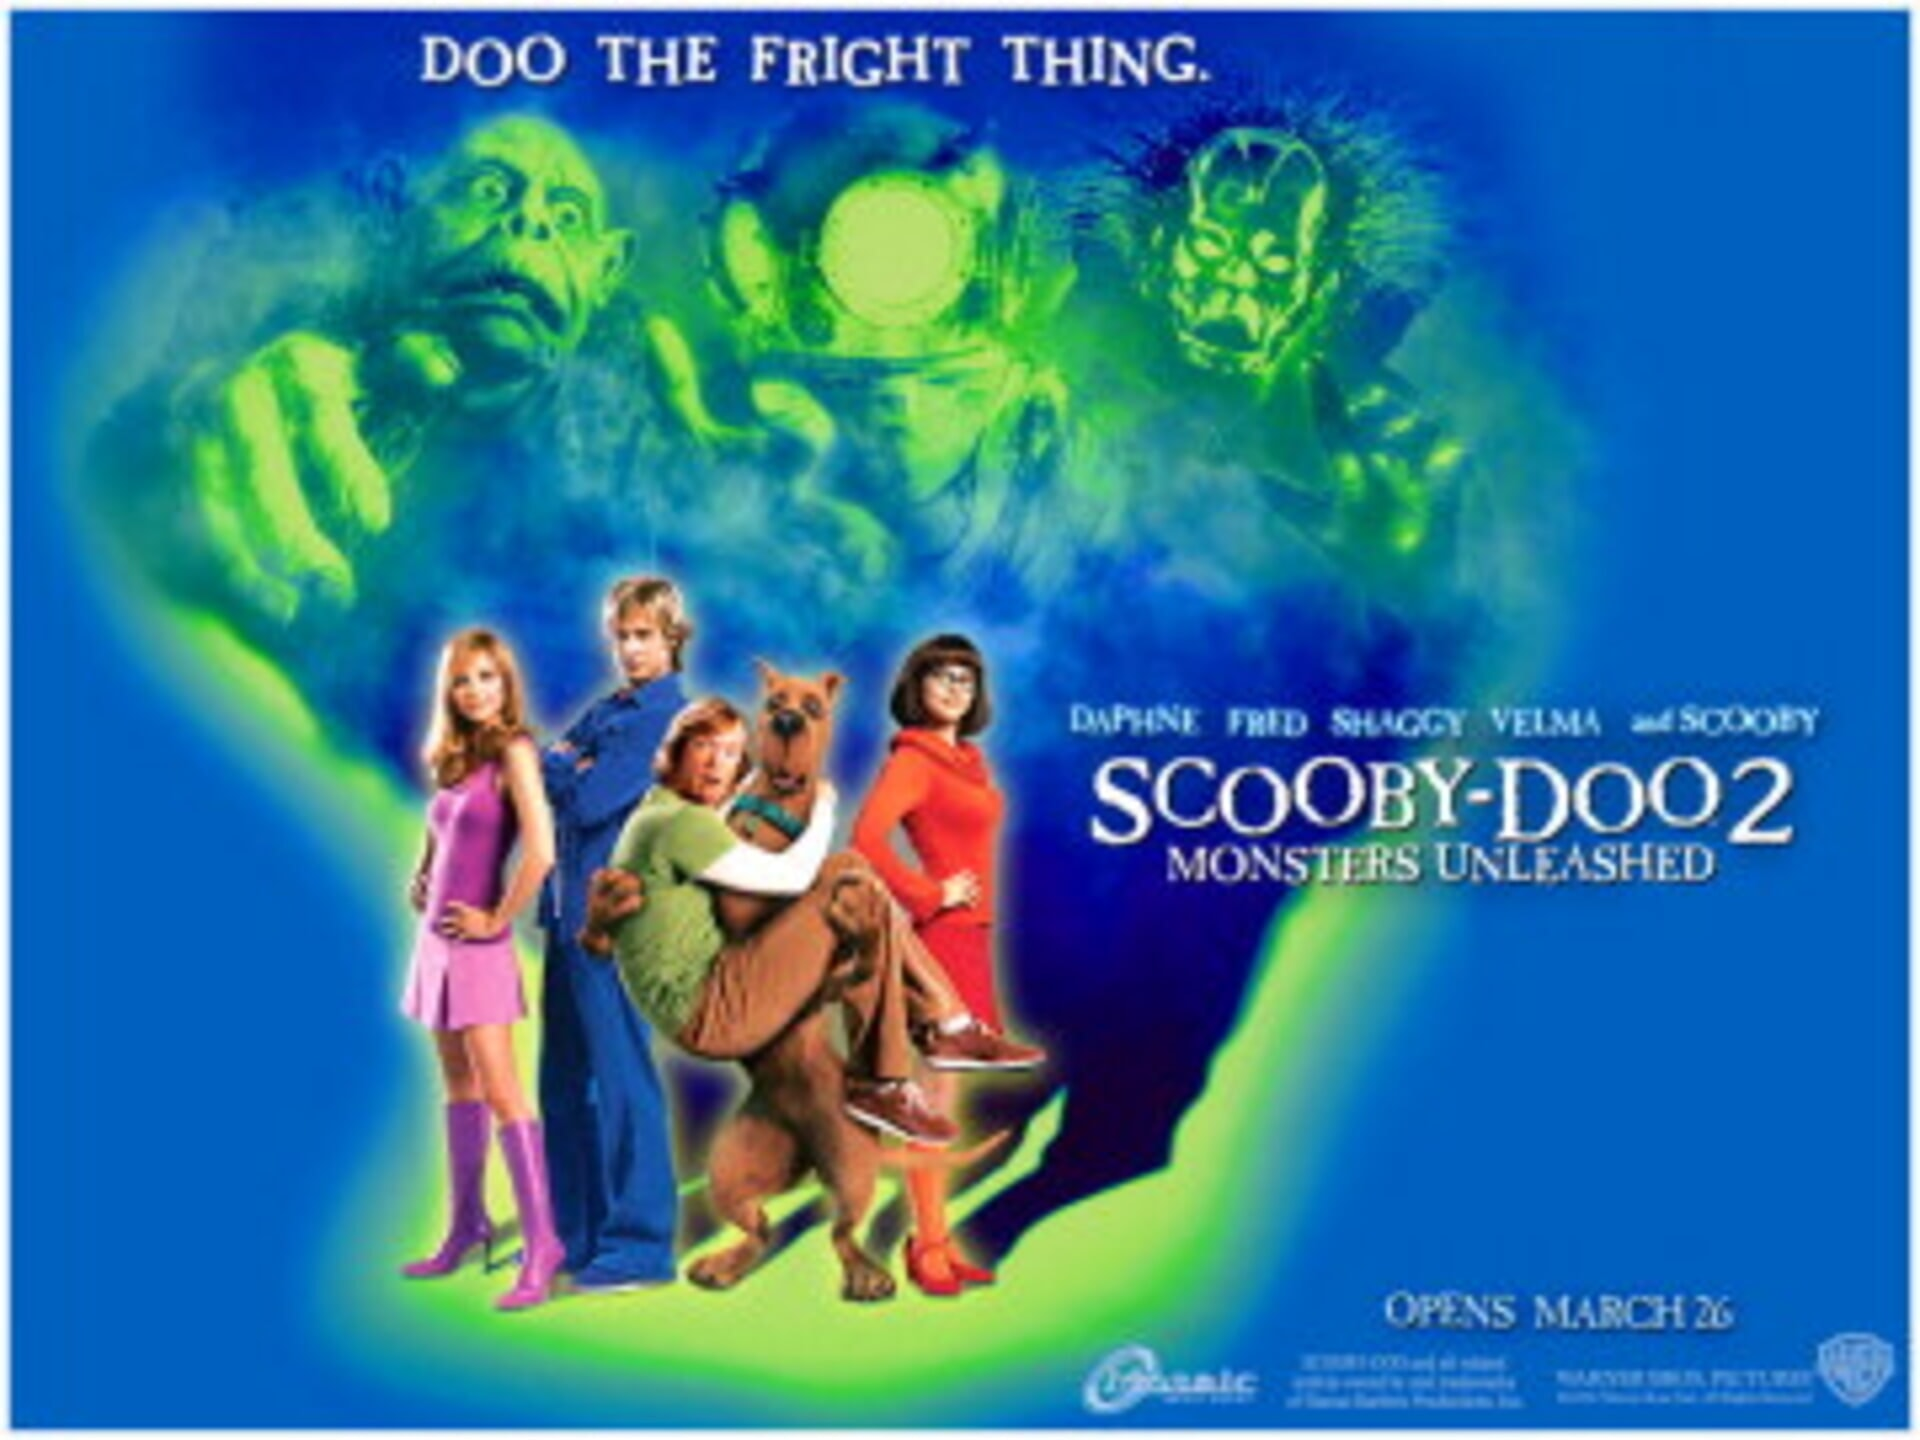 Scooby-Doo 2: Monsters Unleashed - Image 15